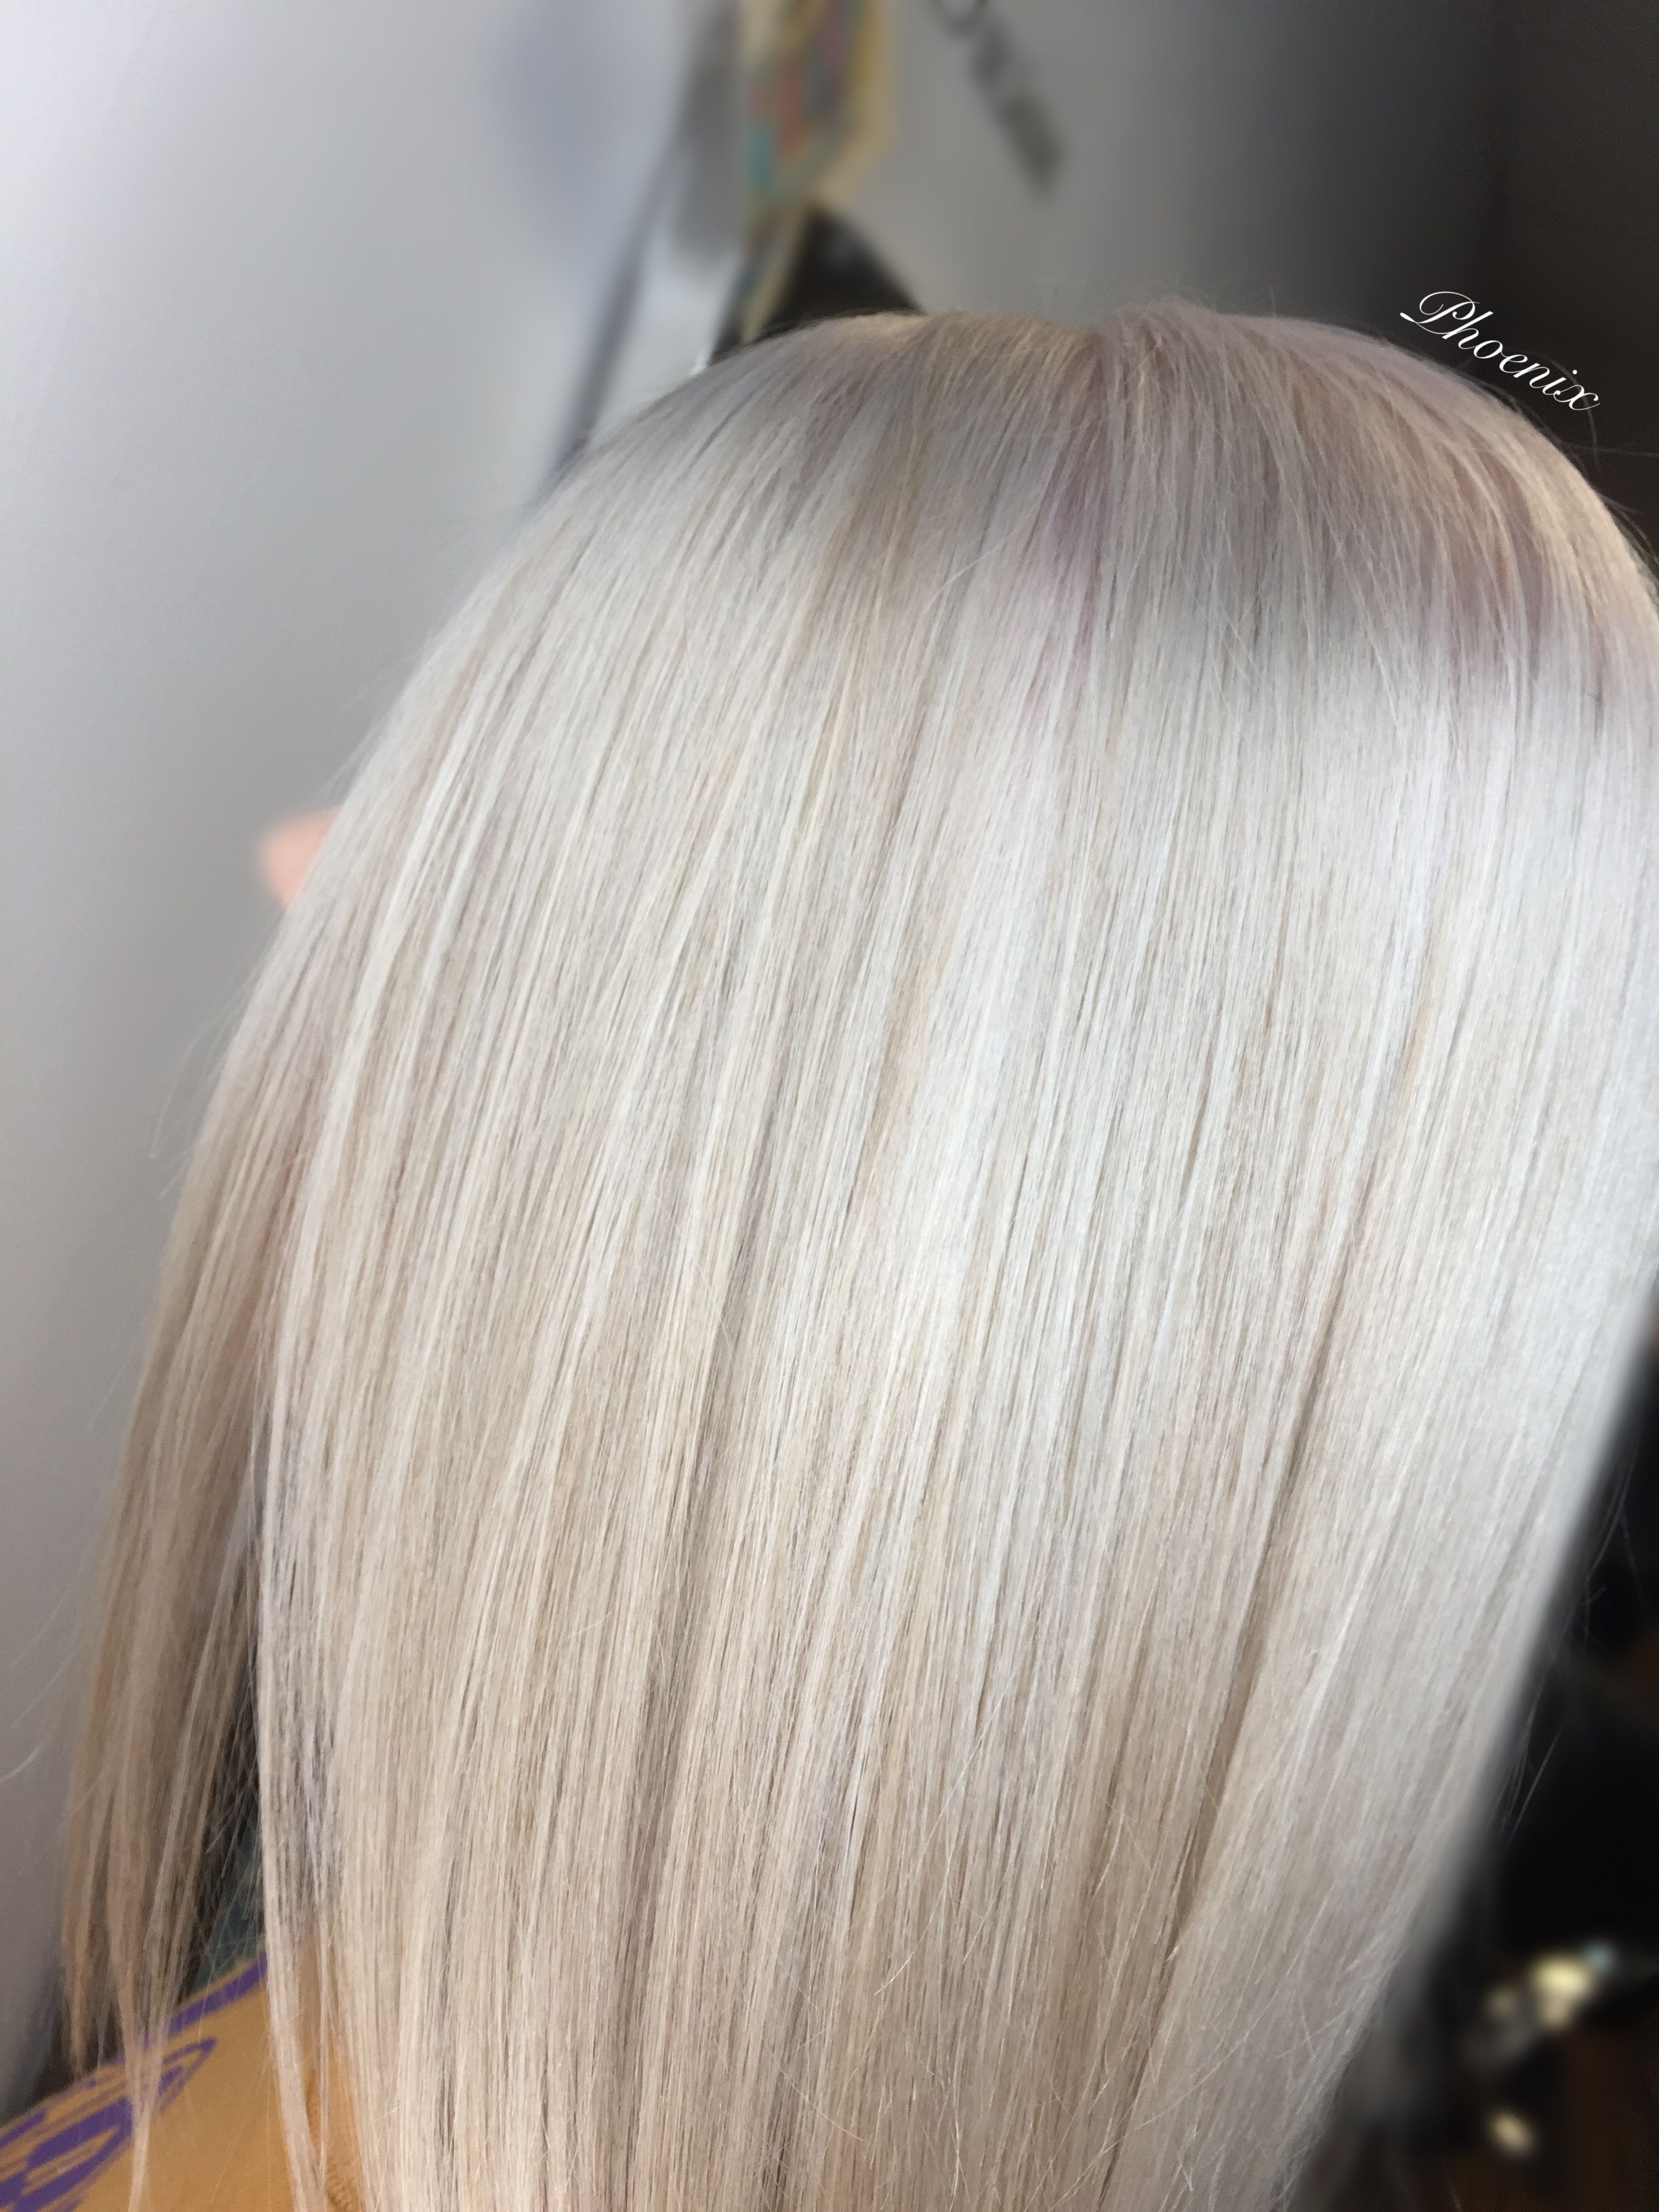 Full head bleach & tone cut & style with cloud 9 Hair transformation Blonde hair Ash pearl blonde hair Ice hair Custom mix foils hair salon bishop auckland County Durham North East salon Cloud9 We stock and use Olaplex Matrix Affinage Joico Kenra Wella Fanola Osmo Ghd Moroccanoil Shellac Billion dollar brows We also offer Lash lift, Waxing & Tinting Member of nhf